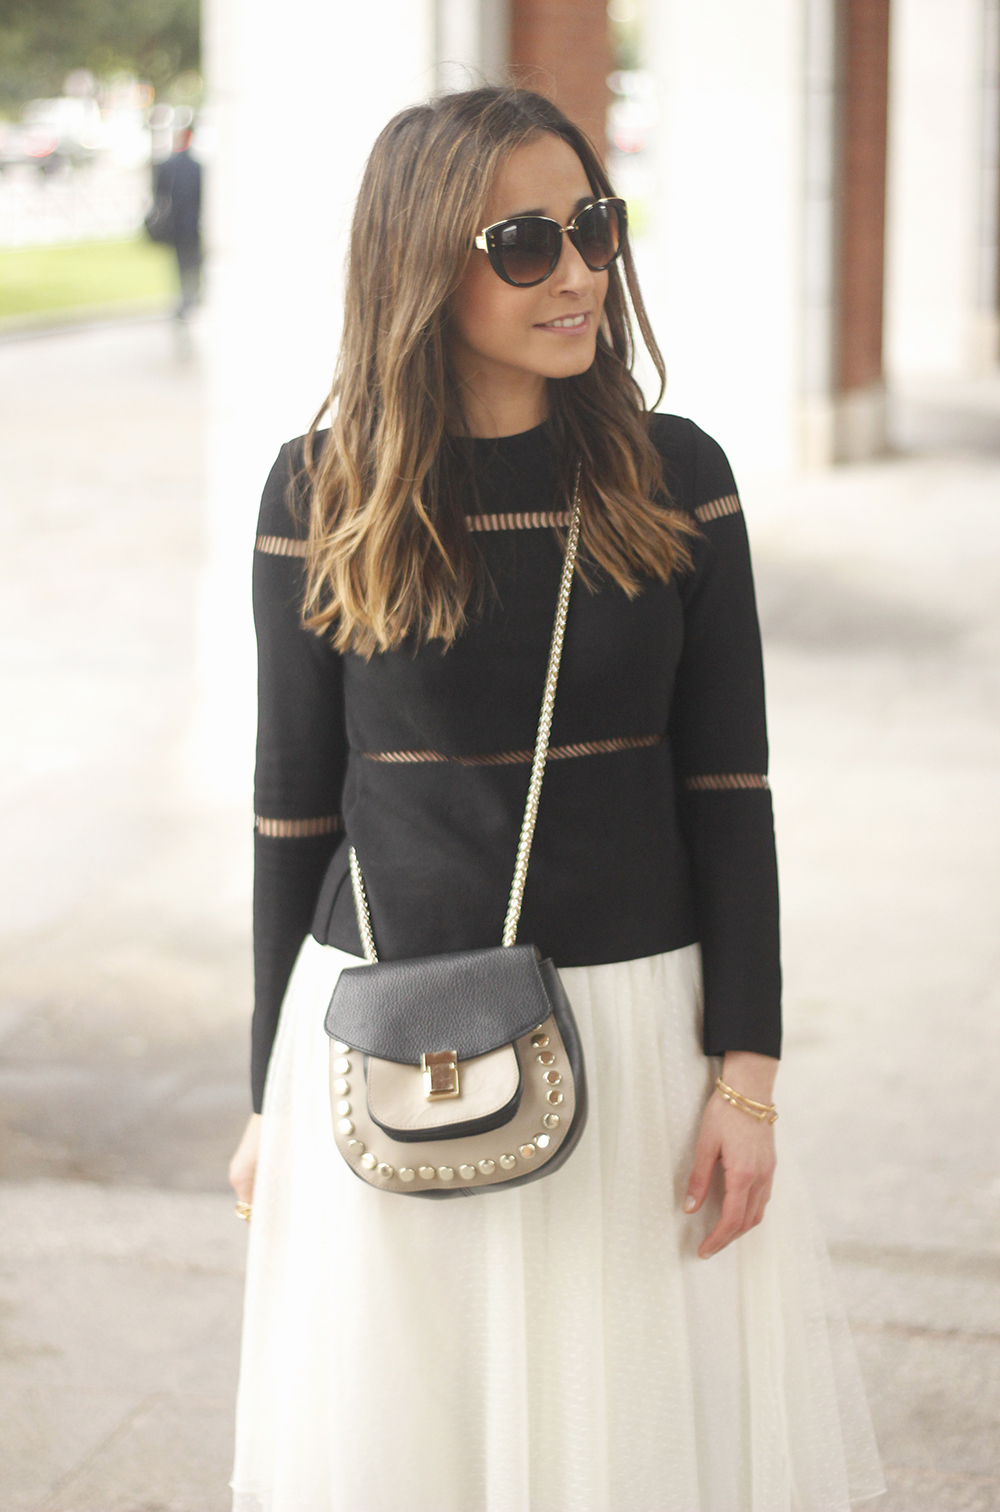 Tulle white skirt over the knee boots black sweater spring rainy day uterqüe bag fashion outfit11